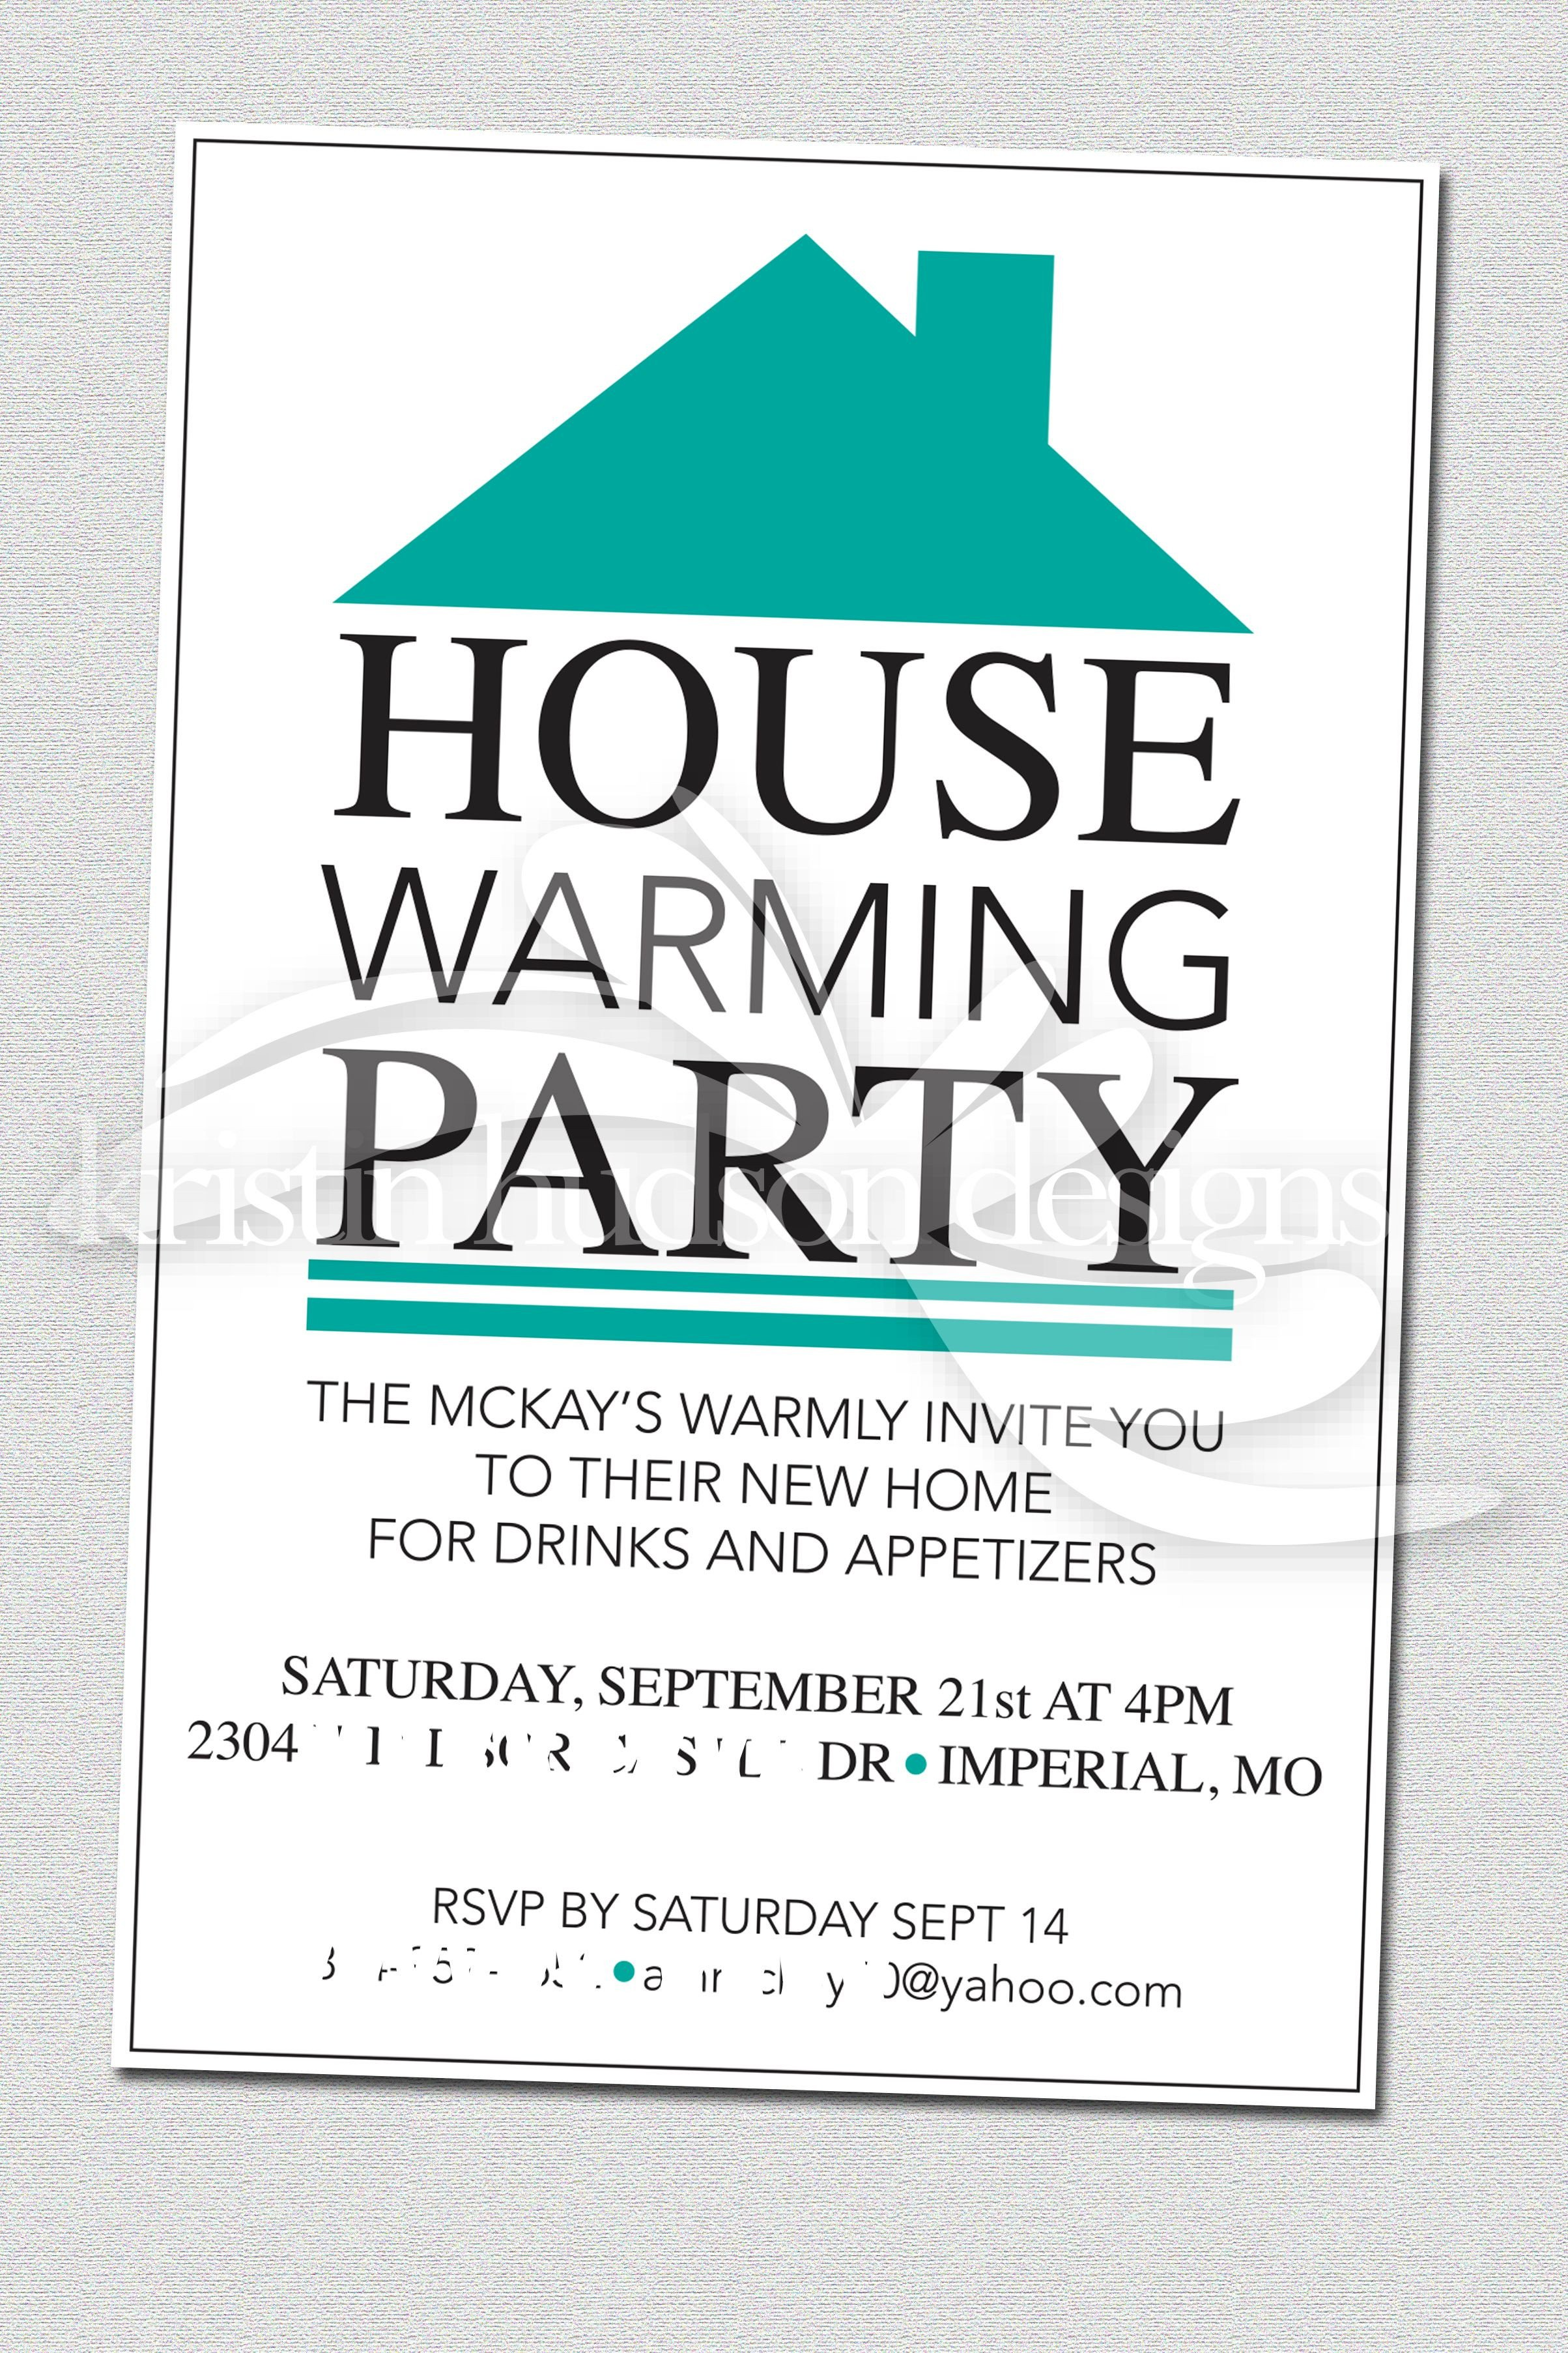 Housewarming Party Invitations Templates House Warming Party Invite